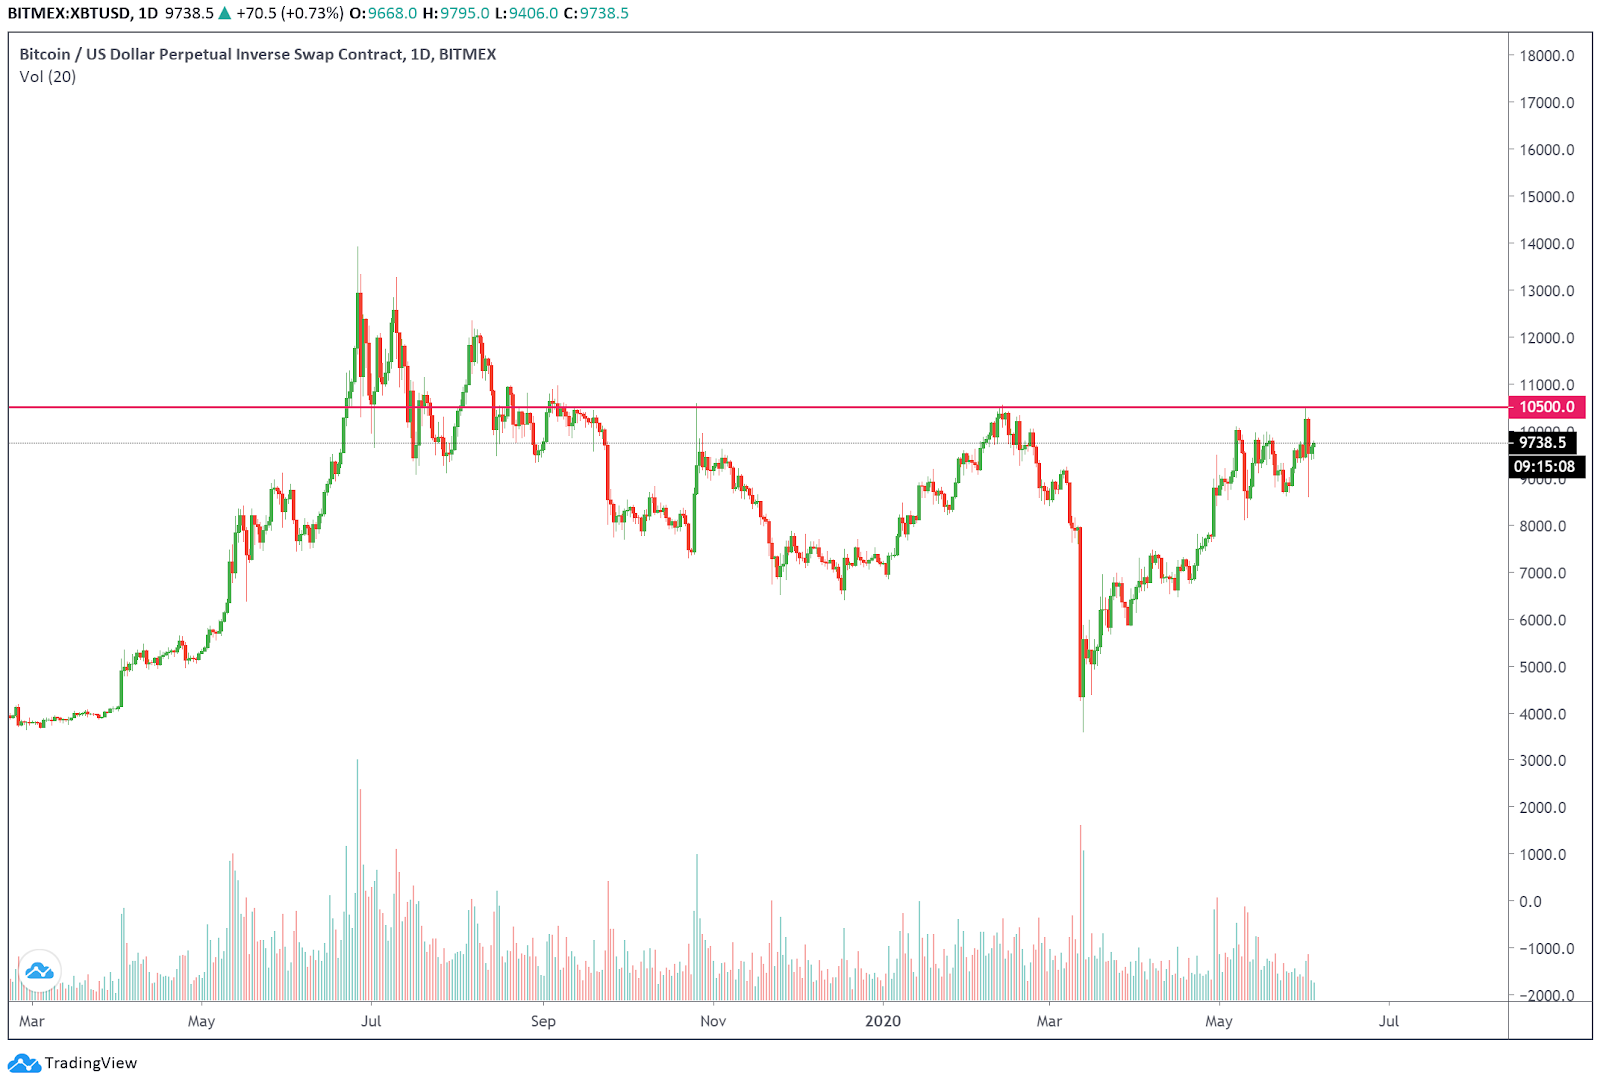 Triple top formation of Bitcoin on the daily chart